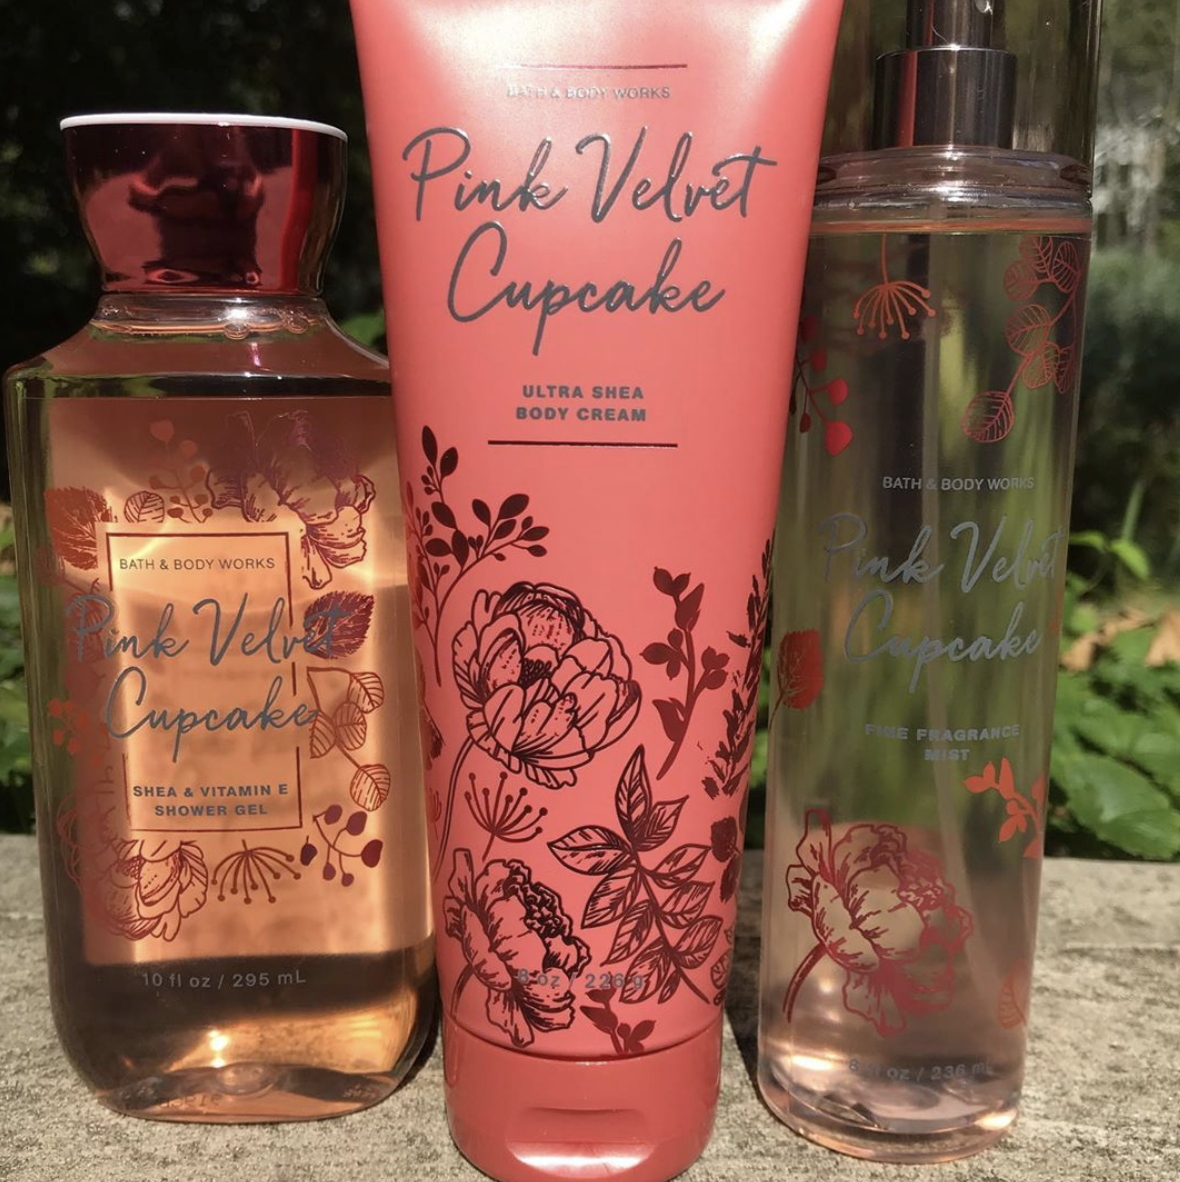 Bath Amp Body Works Pink Velvet Cupcake Review Bath And Body Works Perfume Bath And Body Works Bath And Body